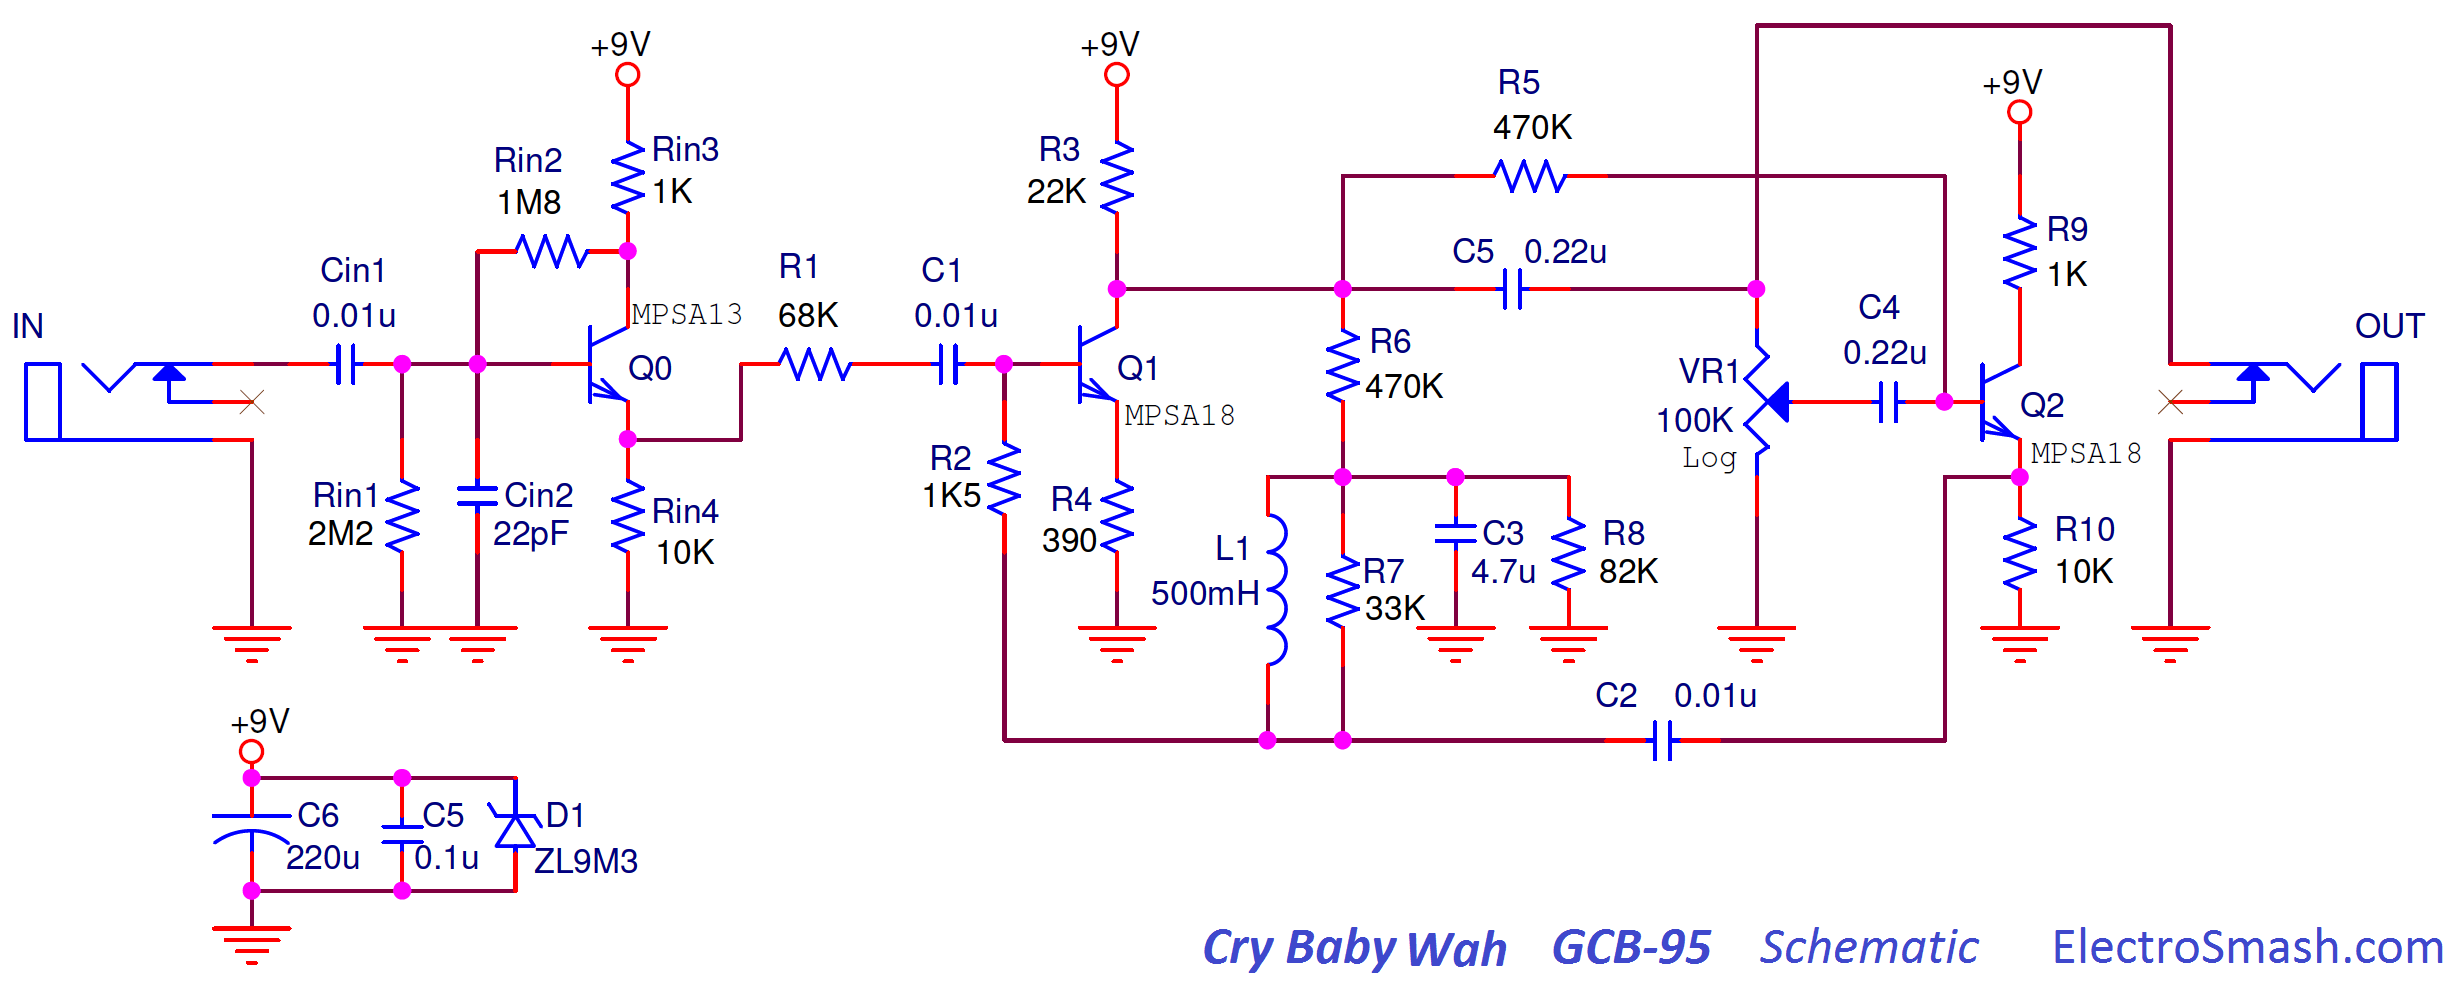 Help To Understand Pcb Layout On Cry Baby Clone